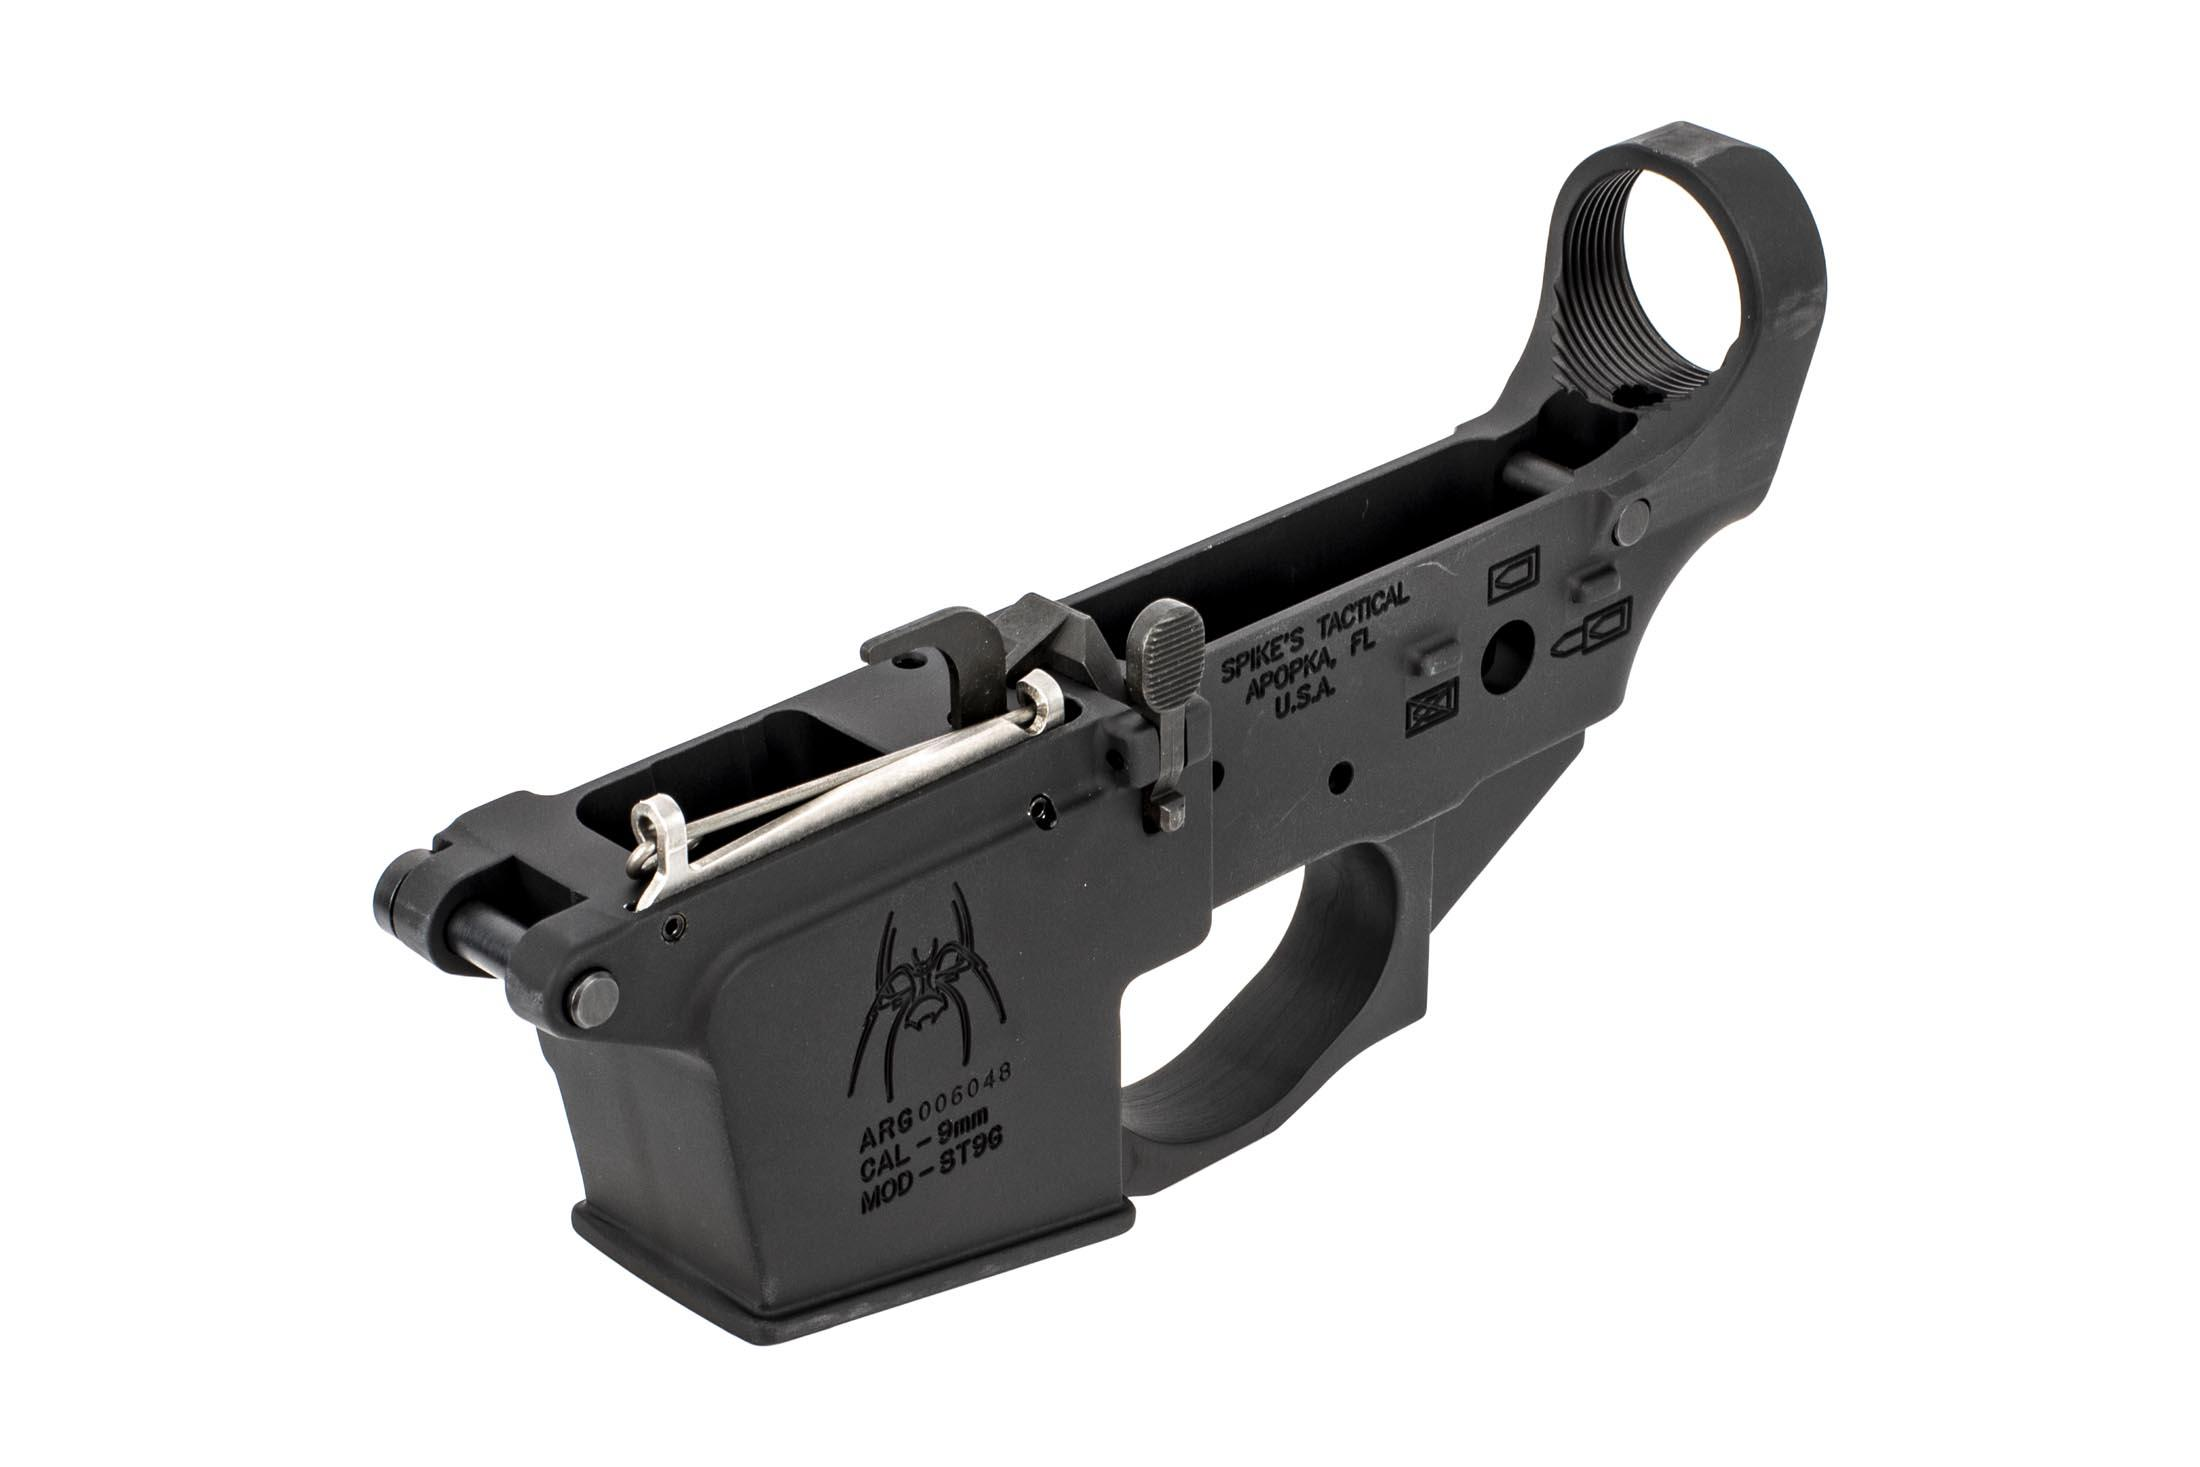 The Spike's Tactical Spider 9mm Lower is compatible with glock magazines